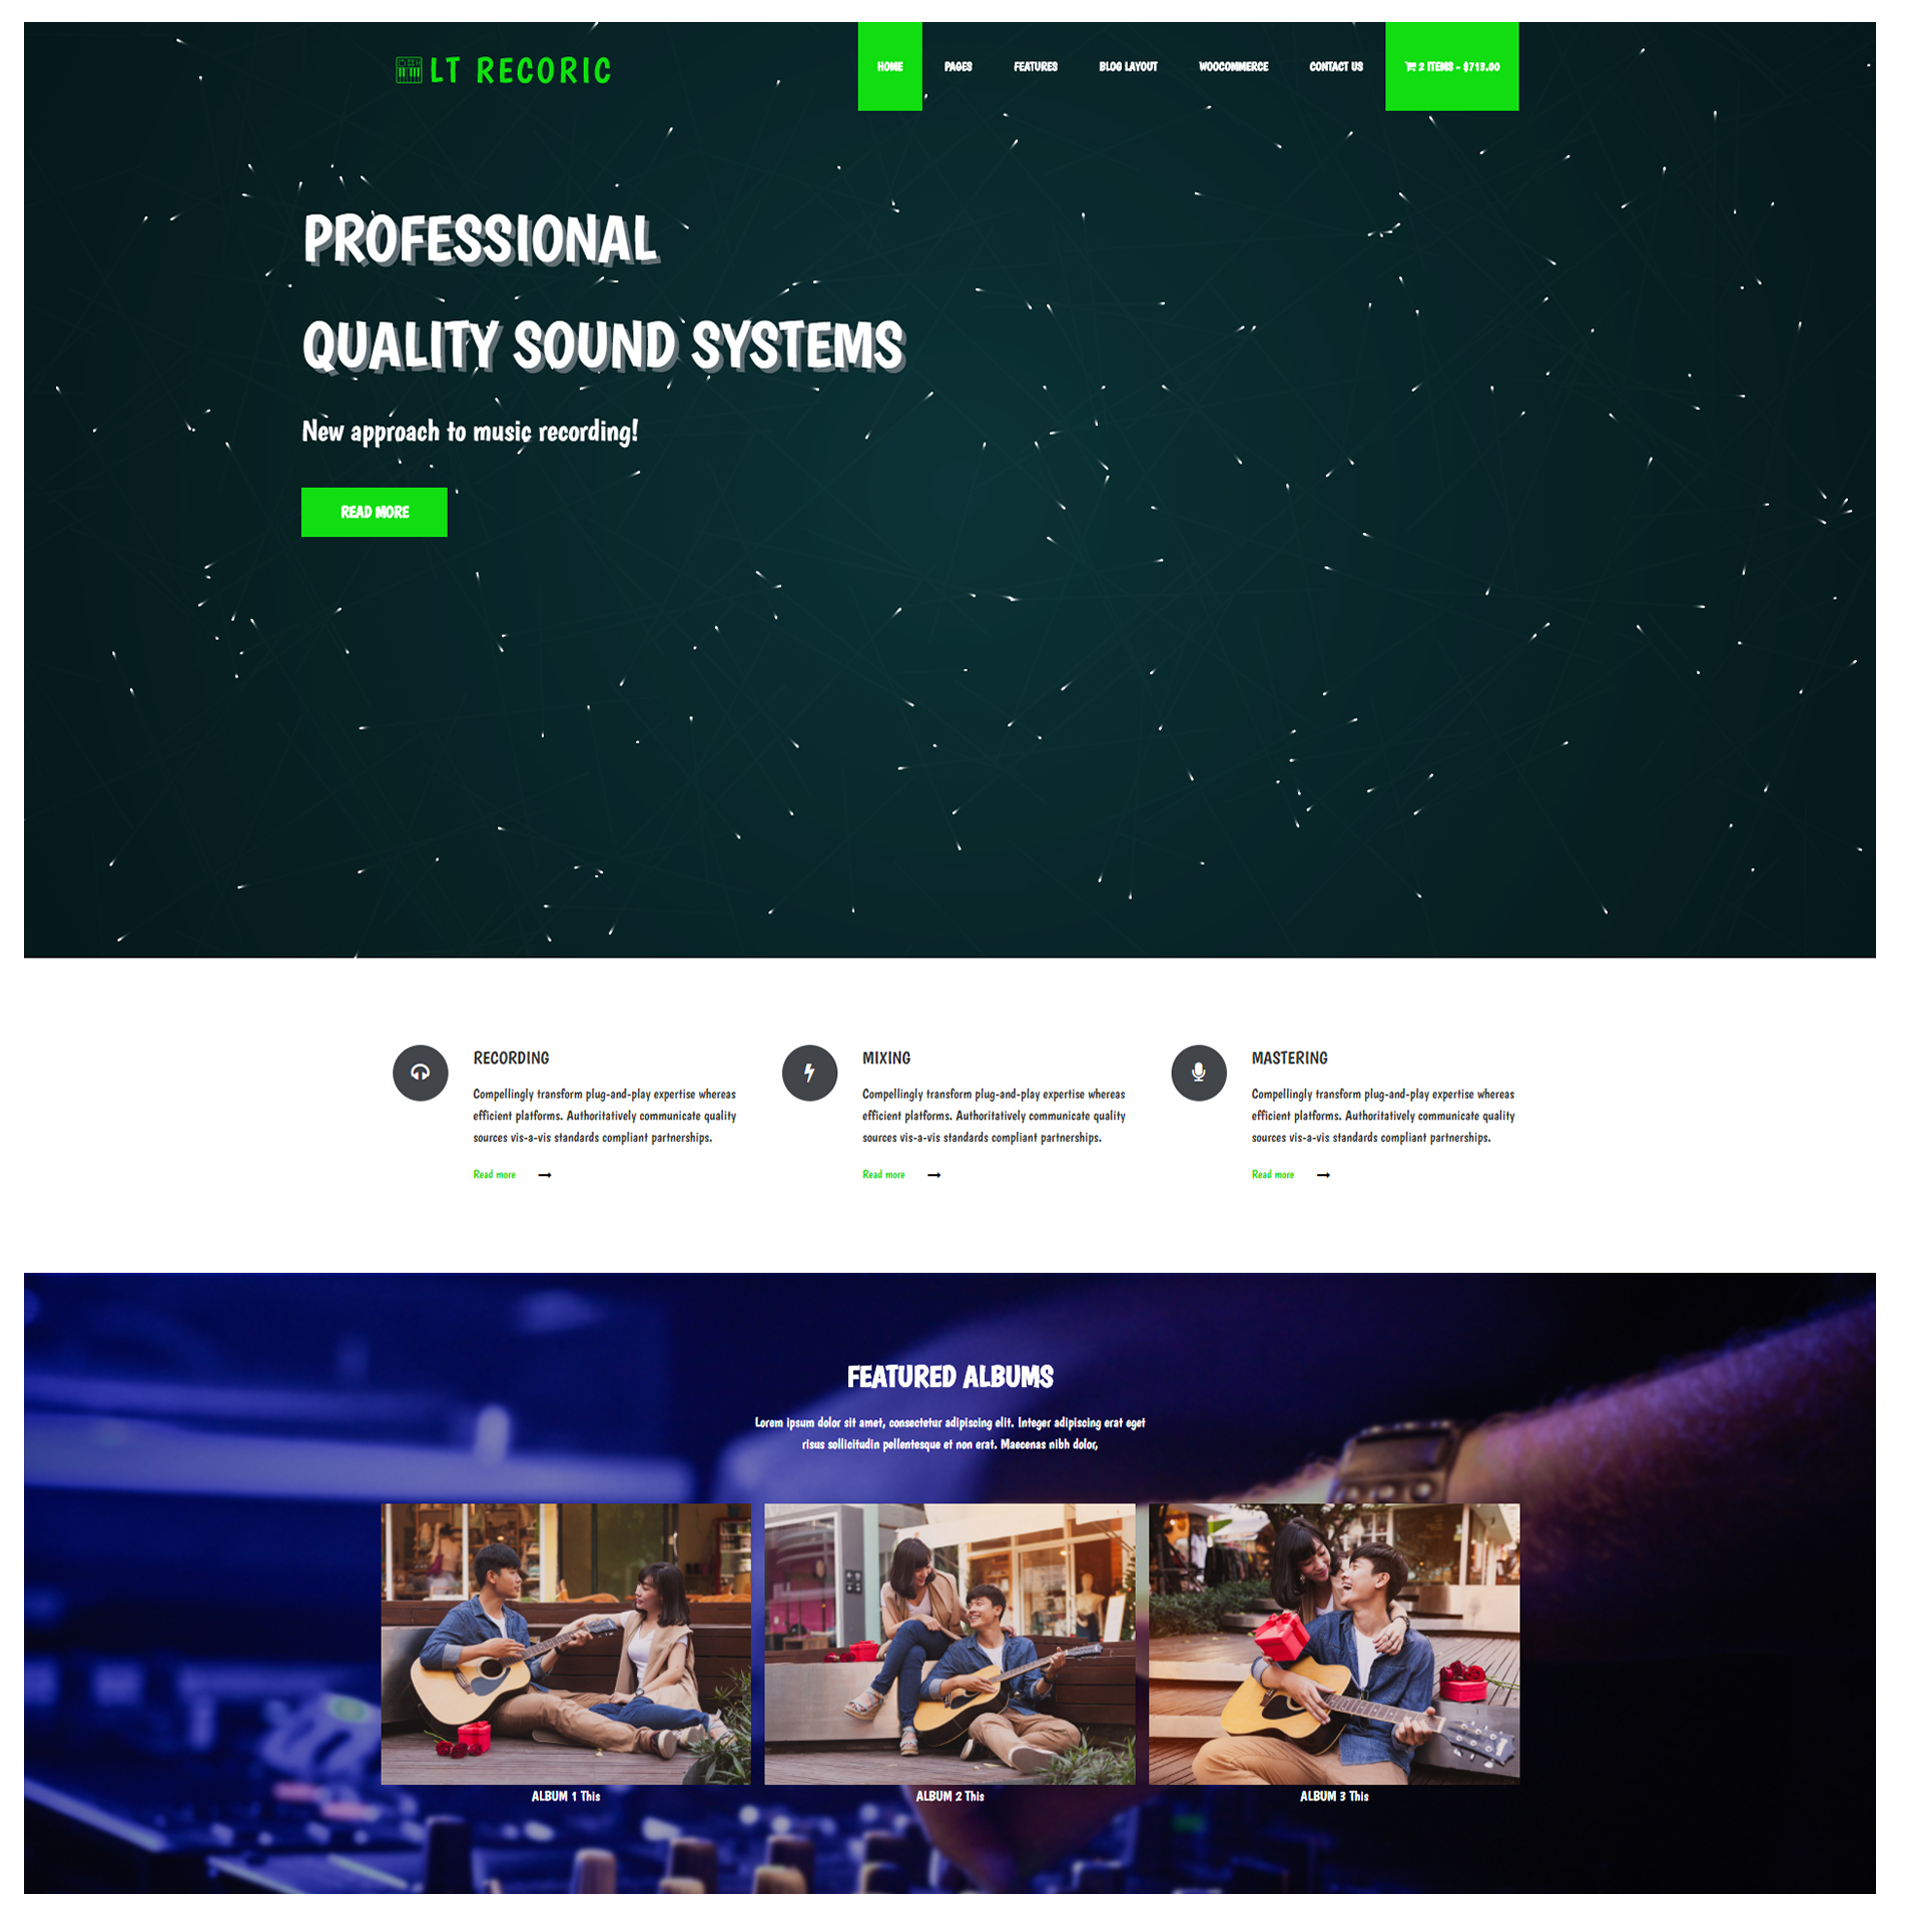 lt-recoric-free-responsive-wordpress-theme-screenshot